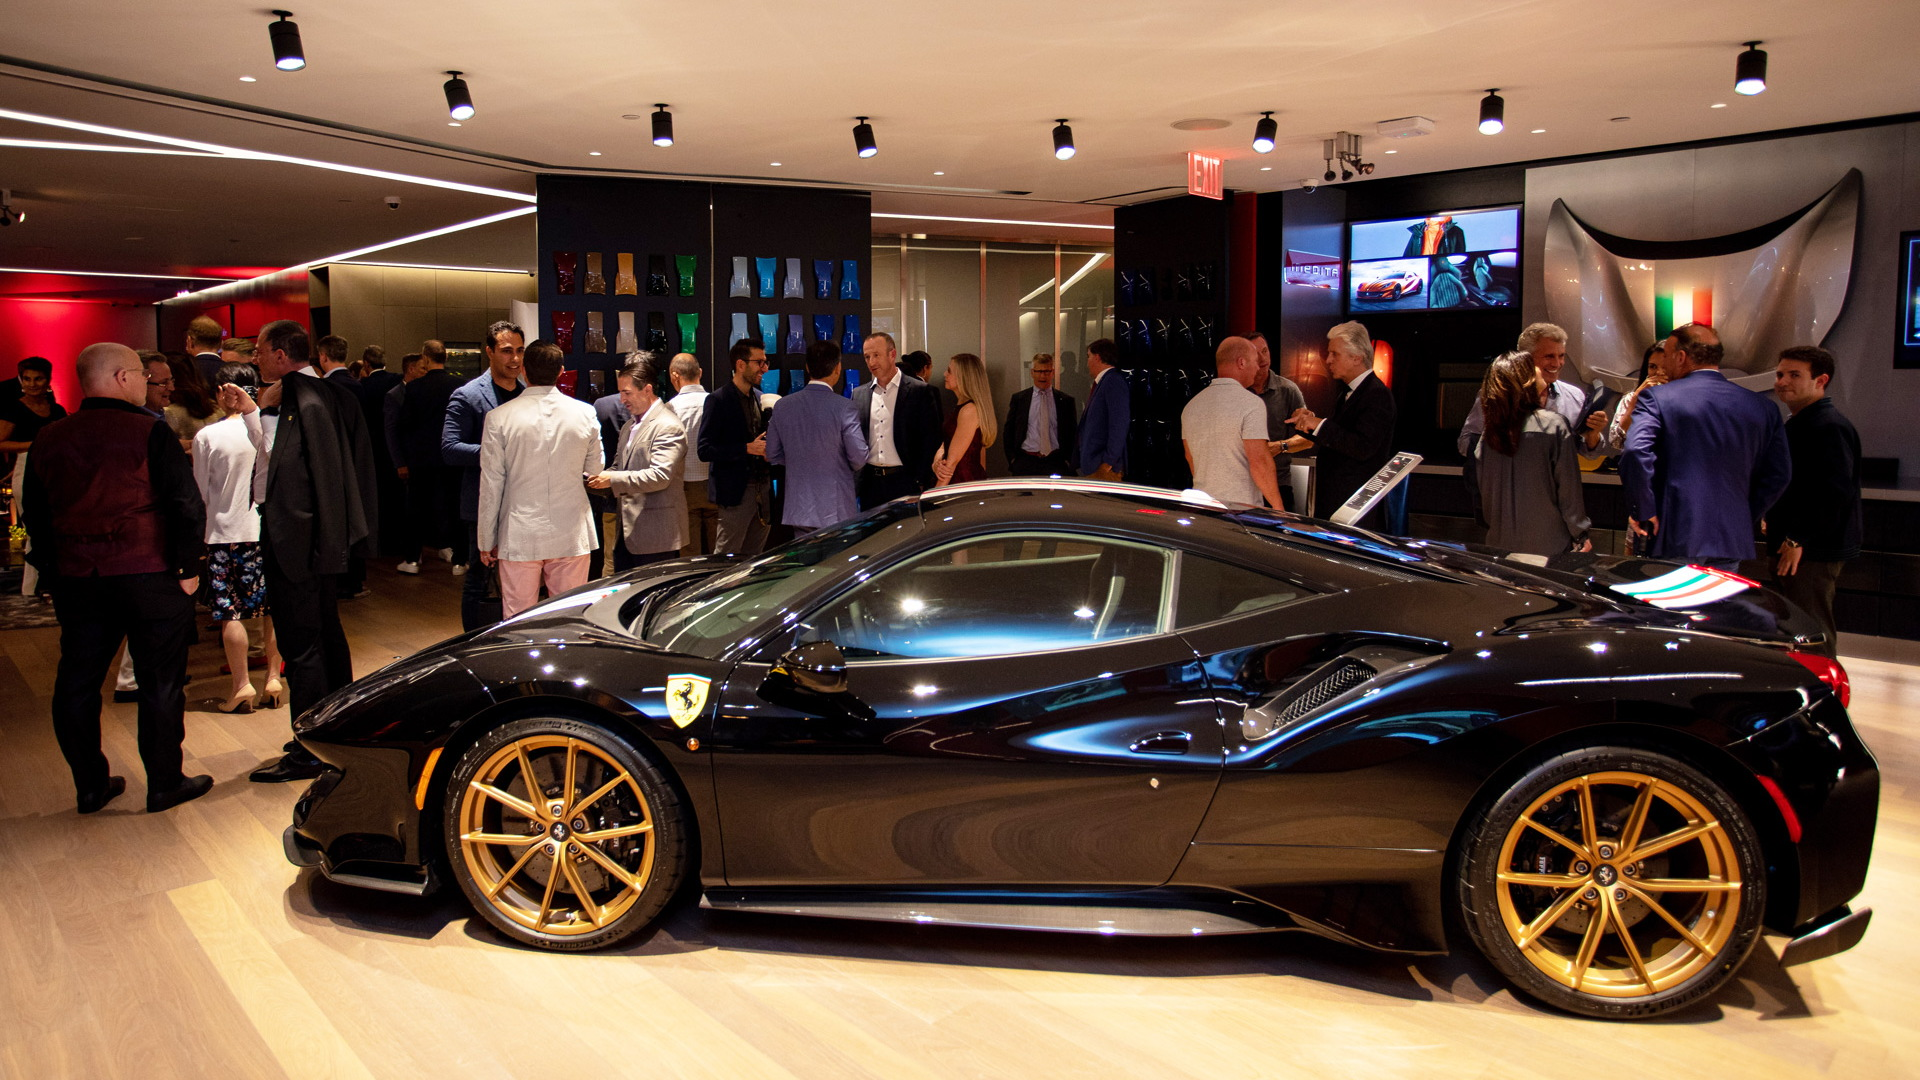 Ferrari Tailor Made Center in New York City